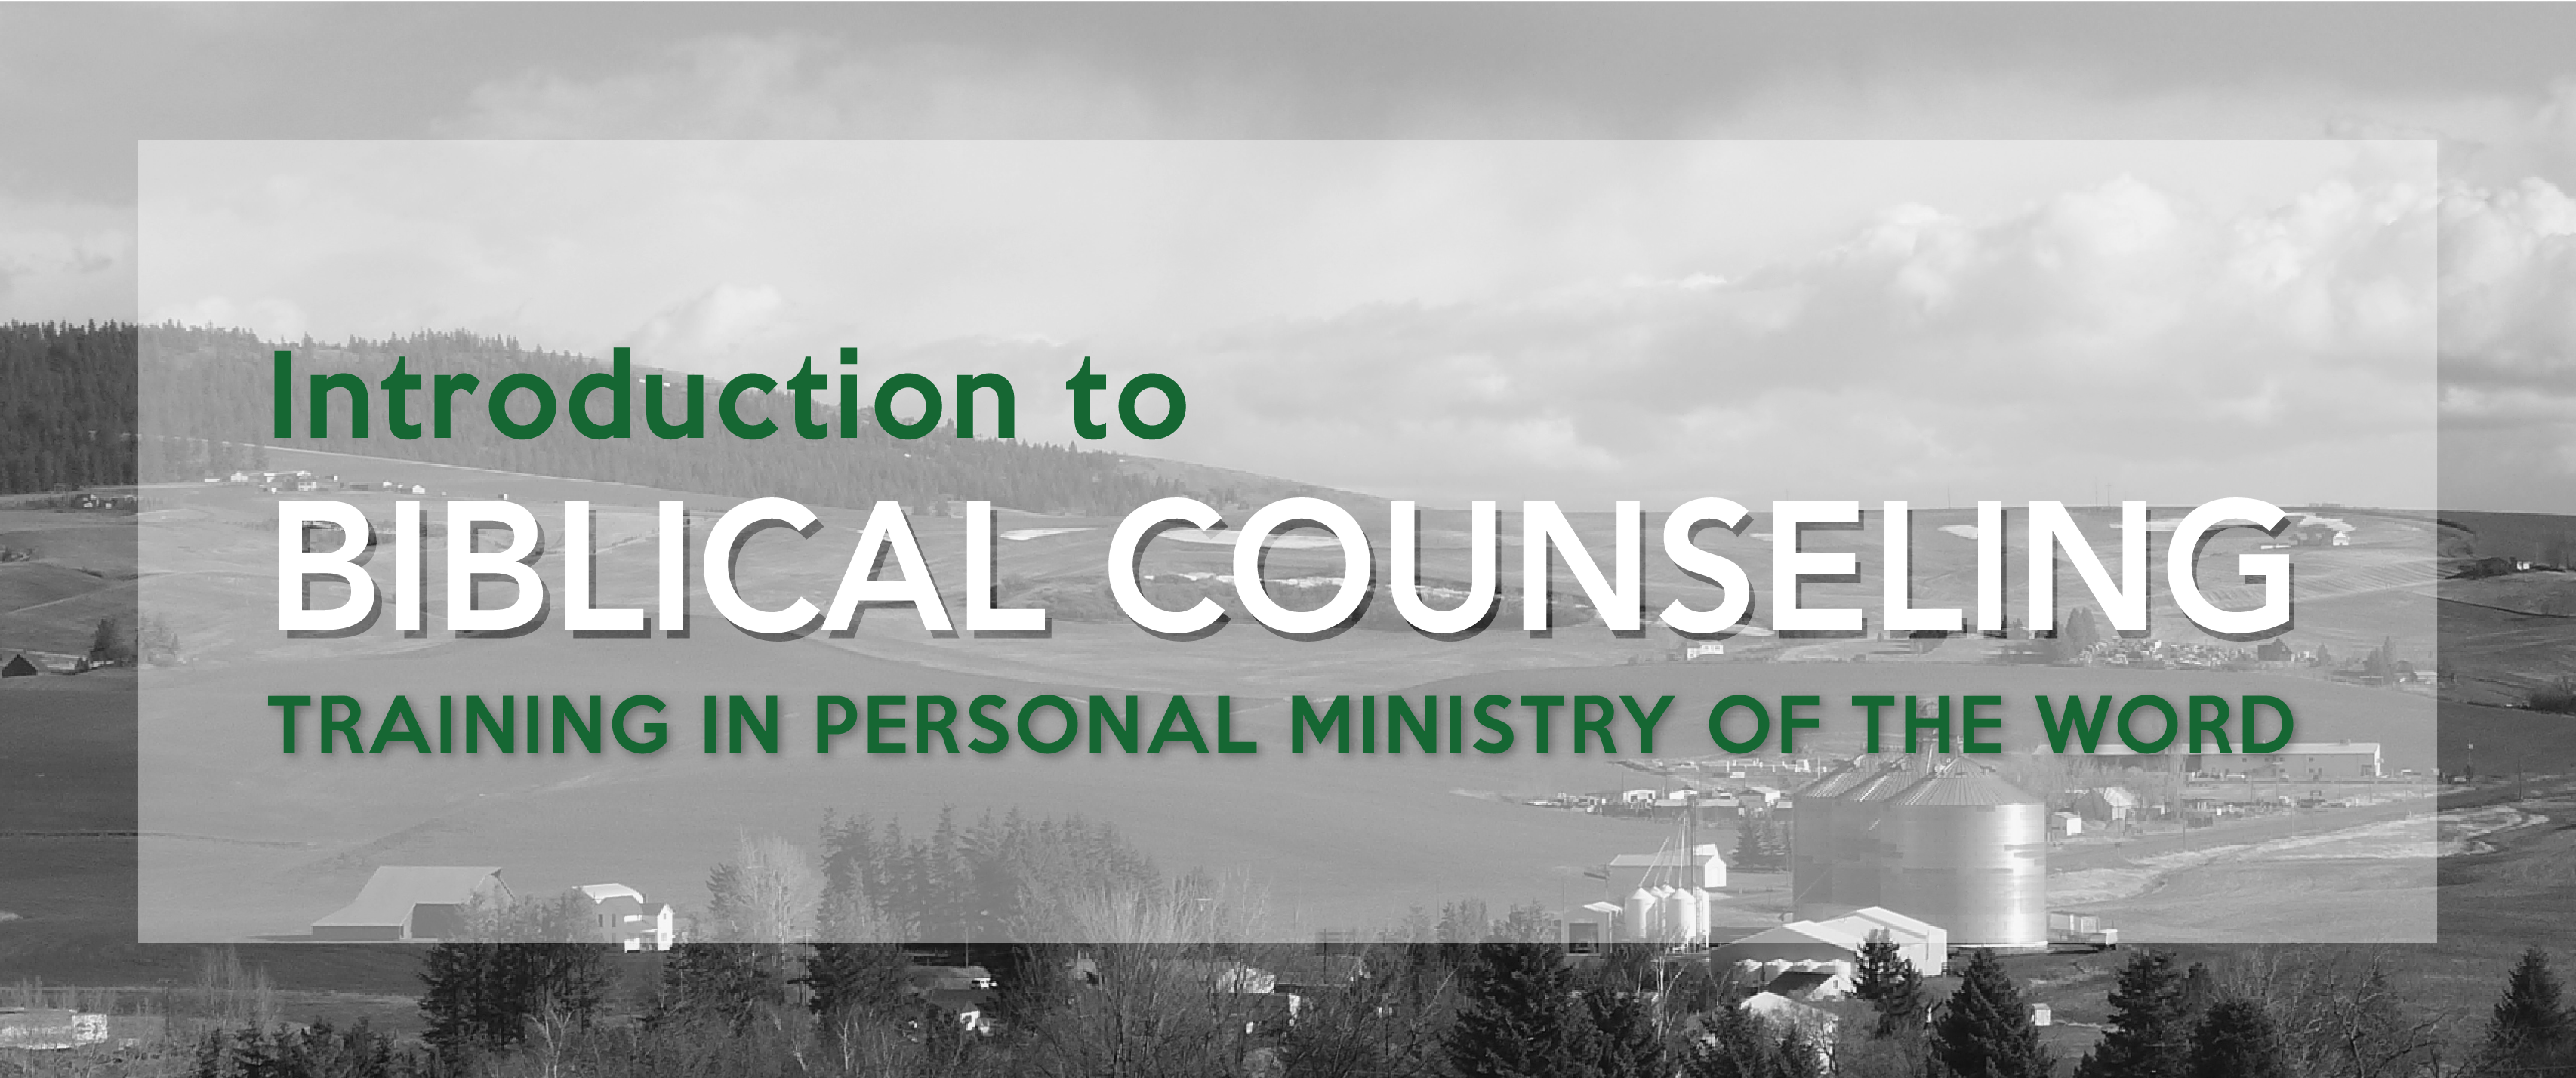 Introduction to biblical counseling christ church events 2016